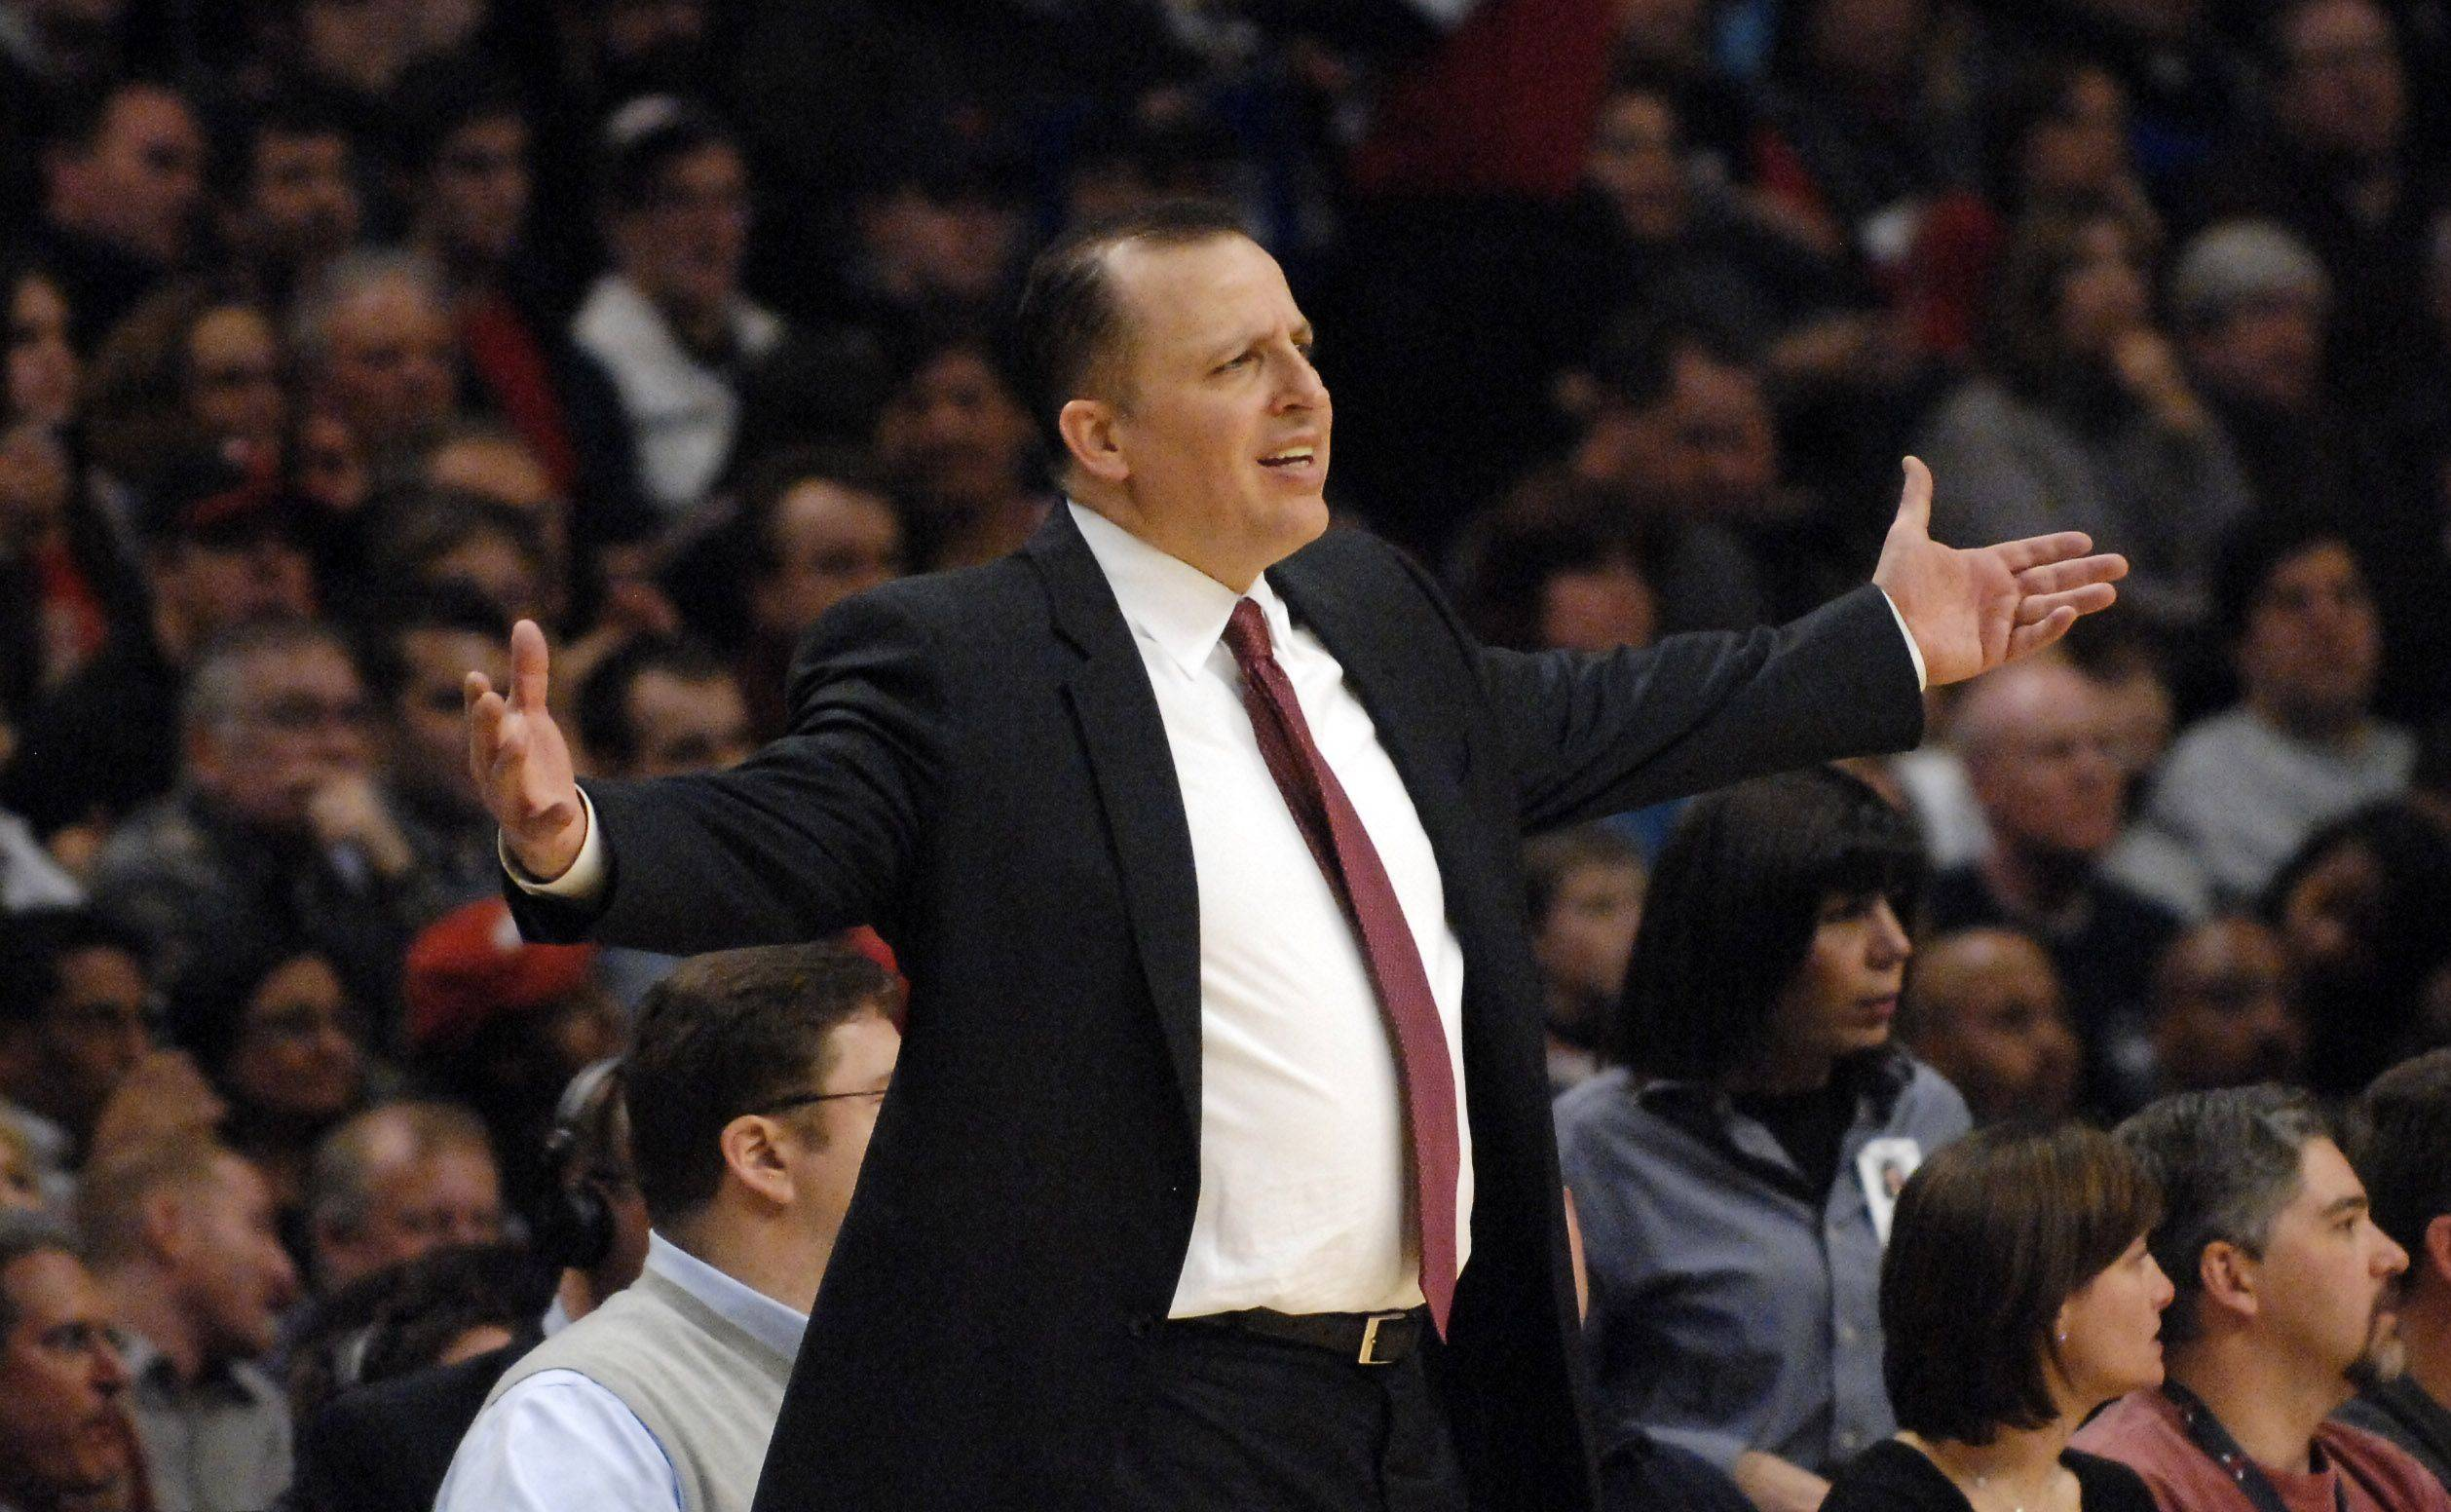 Chicago Bulls head coach Tom Thibodeau during Saturday's game at the United Center in Chicago.